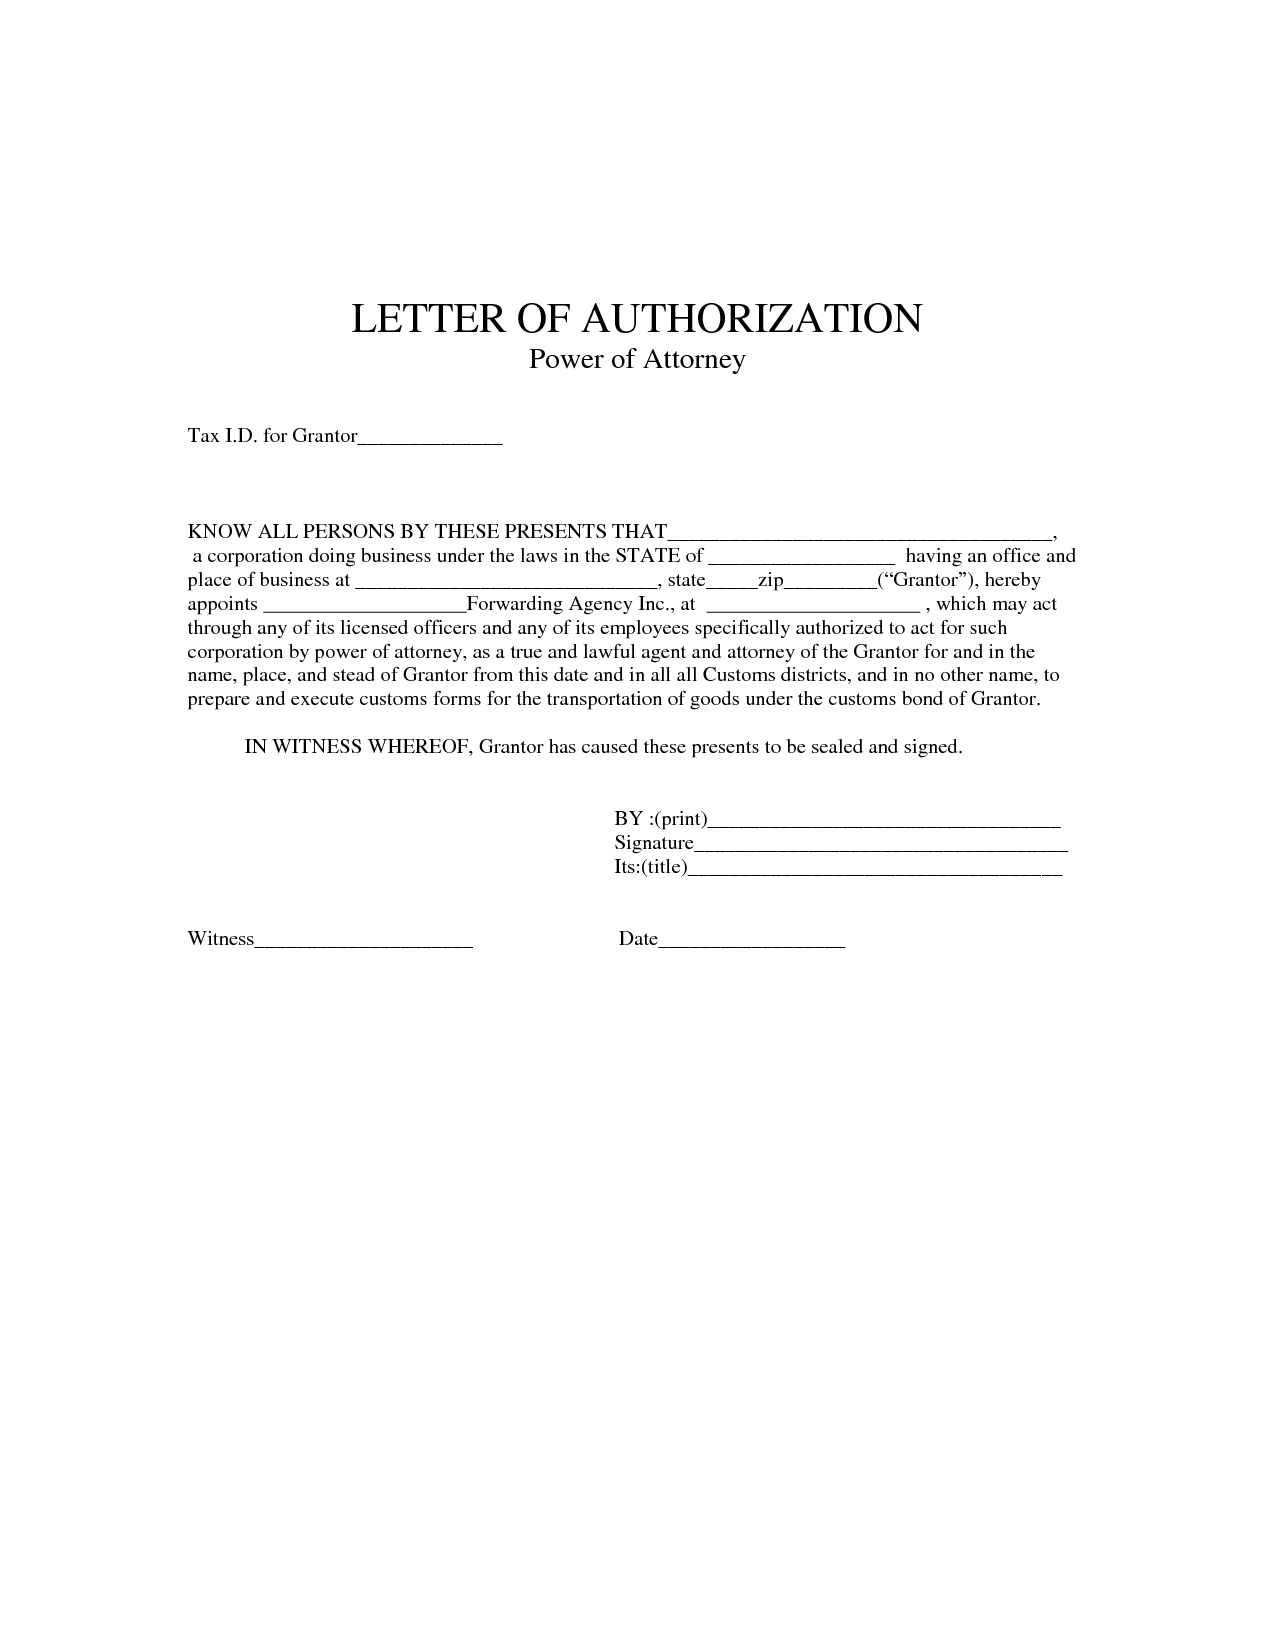 power authorization letter sample employment verification form - Sample Special Power Of Attorney Form